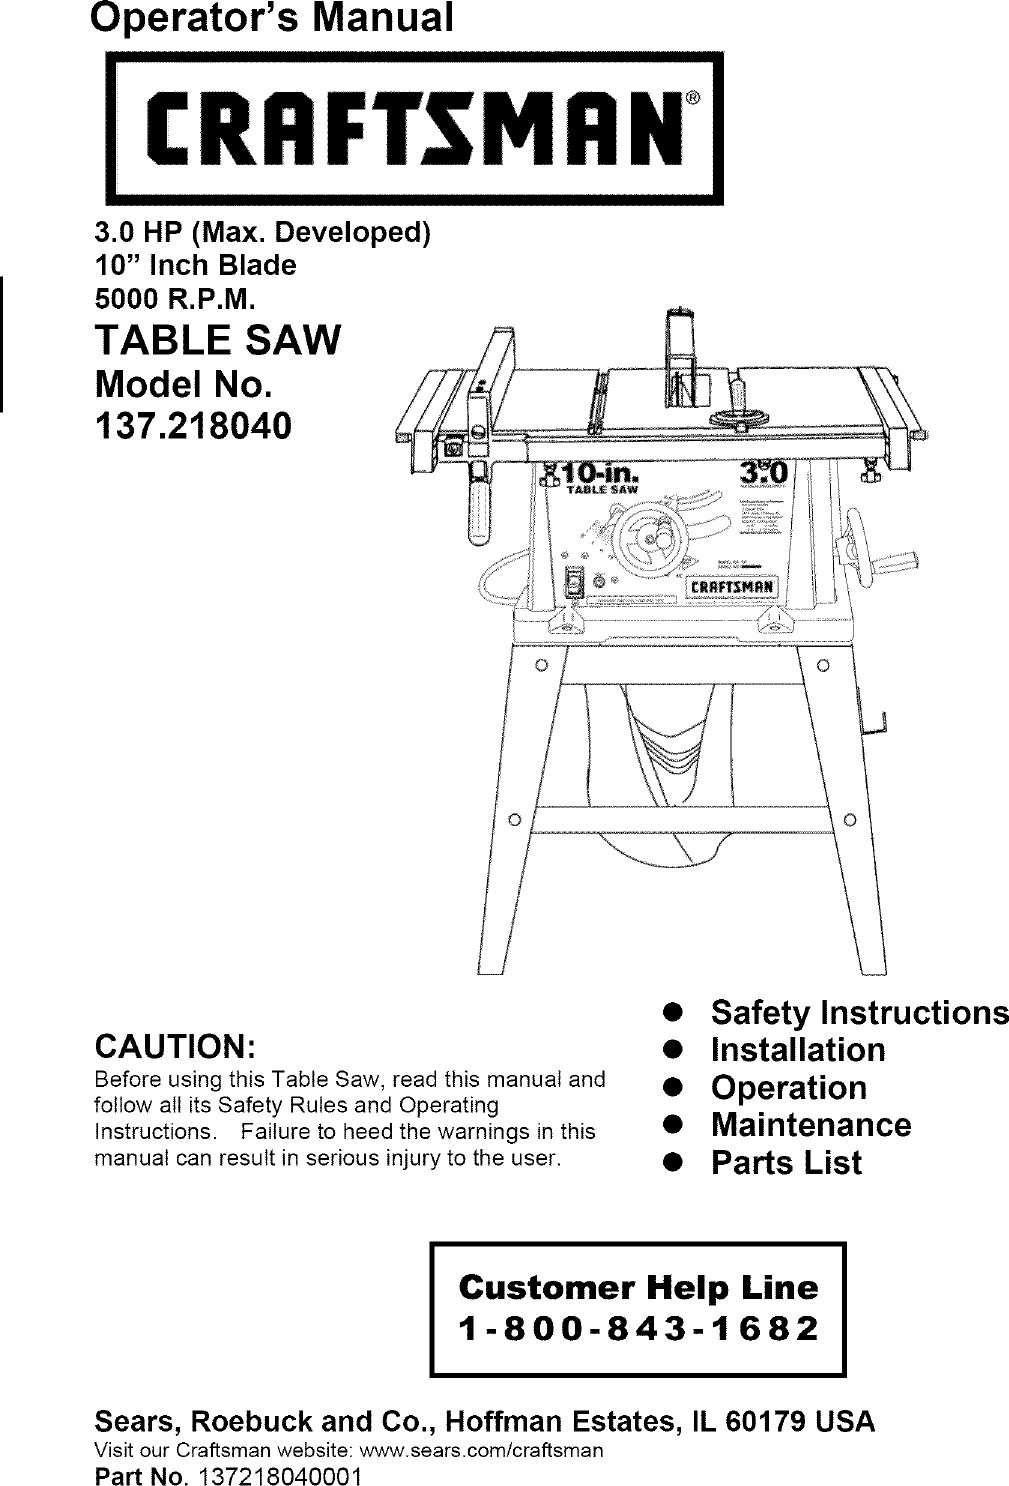 Craftsman 137218040 User Manual Table Saw Manuals And Guides L0408136 Sears 10 Switch Wiring Diagram